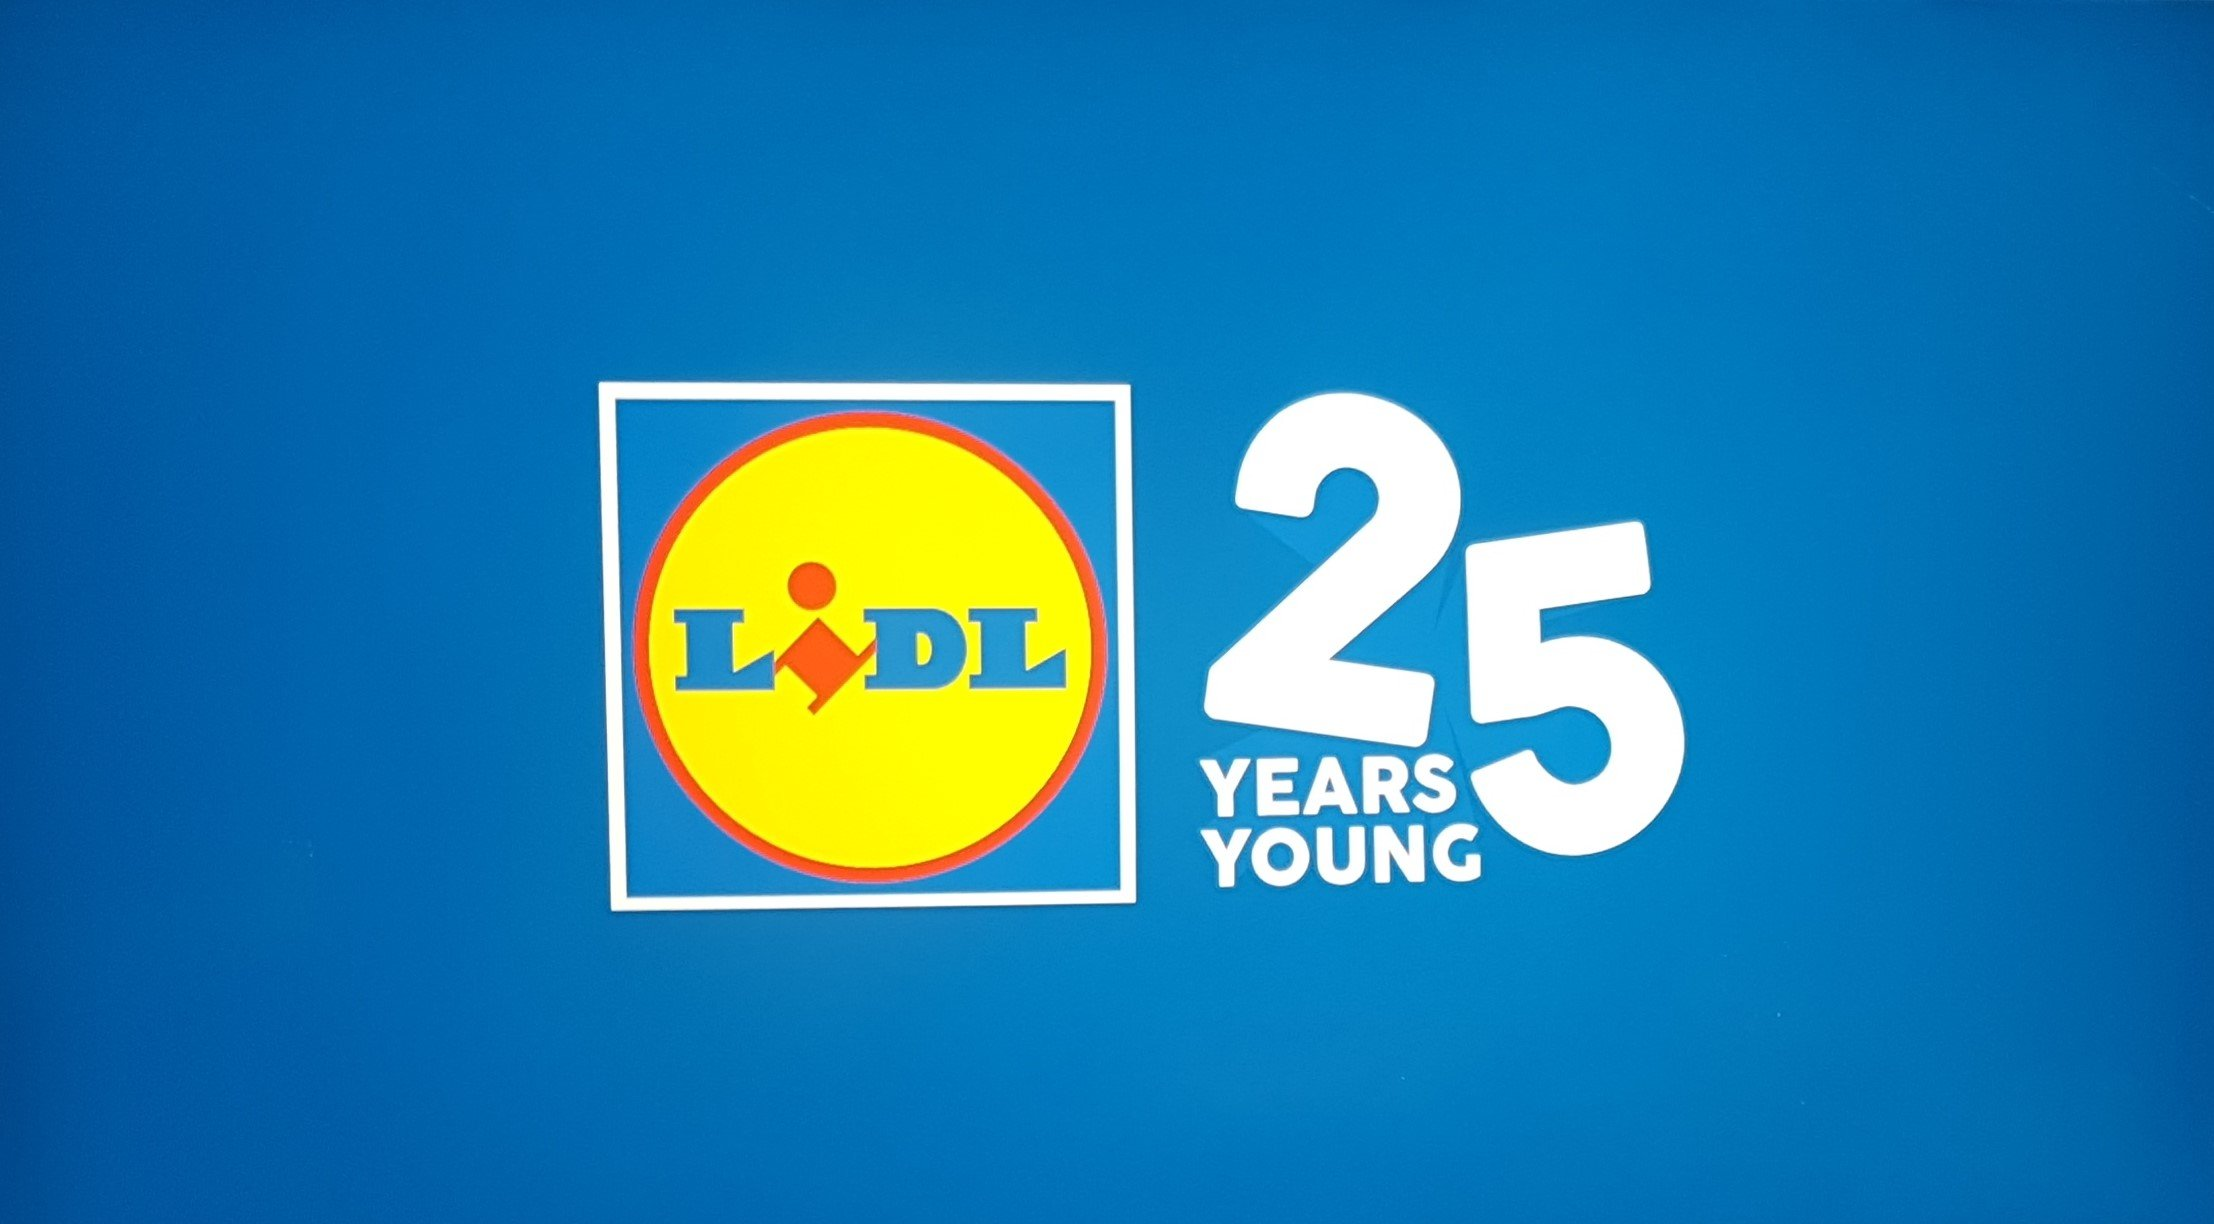 Lidl Event Facilitated by HaslerHill Consulting